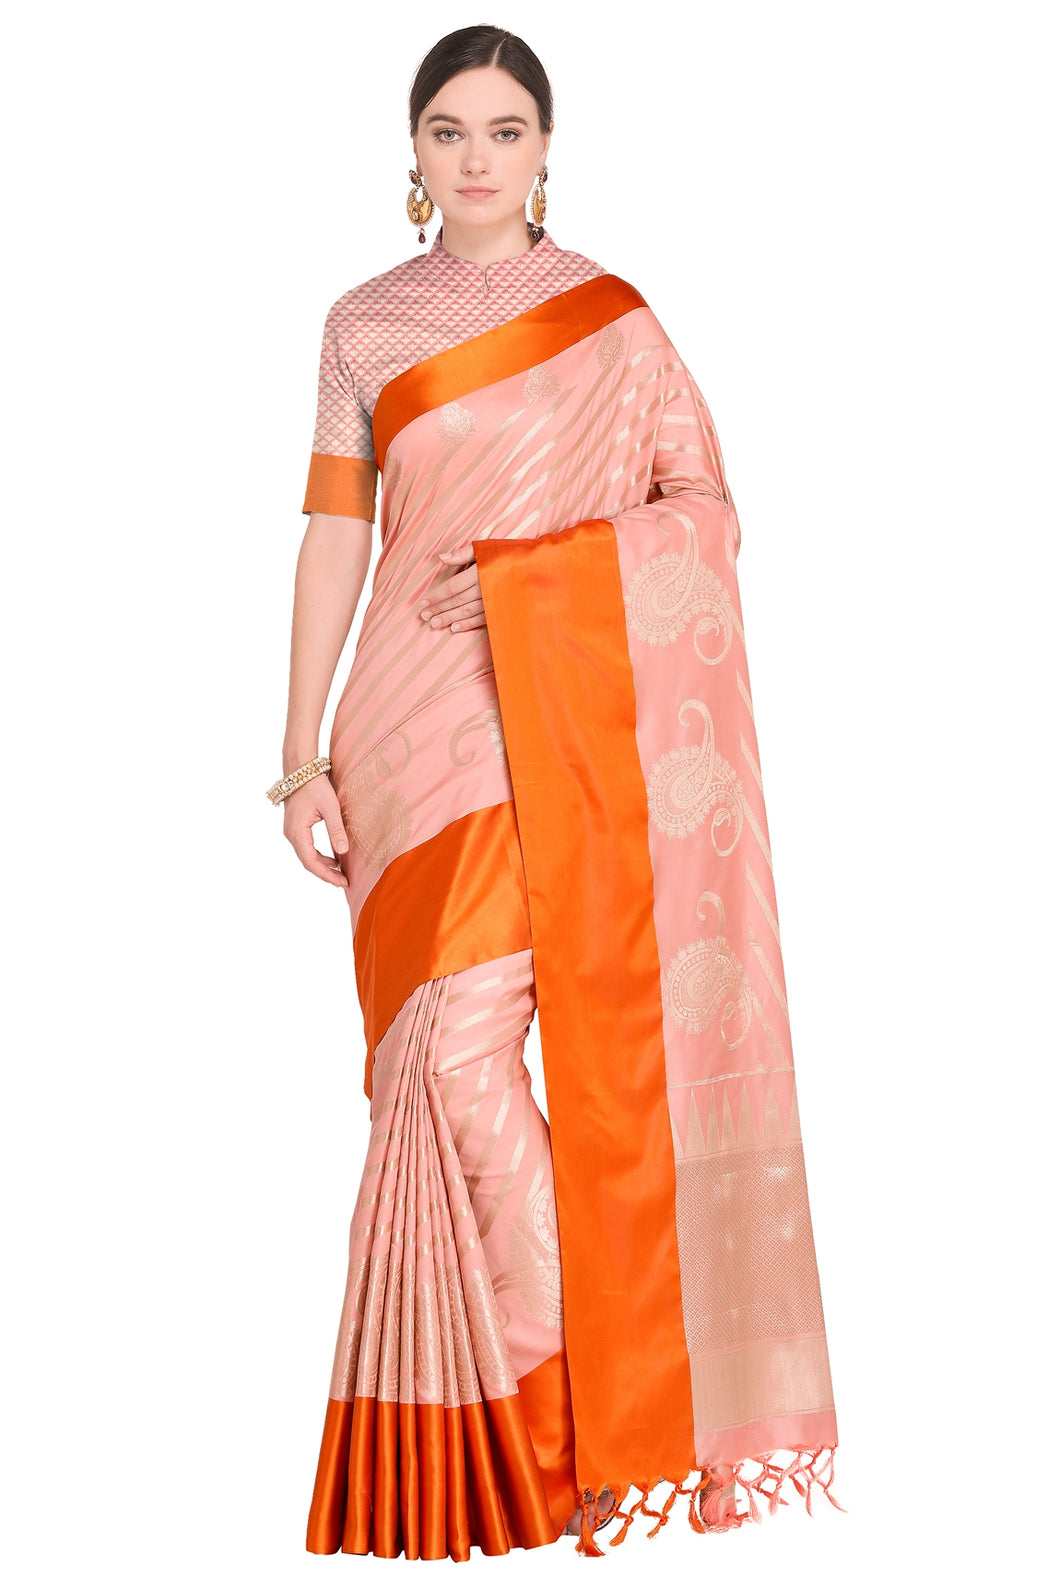 Bhelpuri Light Peach Banarasi Katan Silk Woven Saree with Blouse Piece